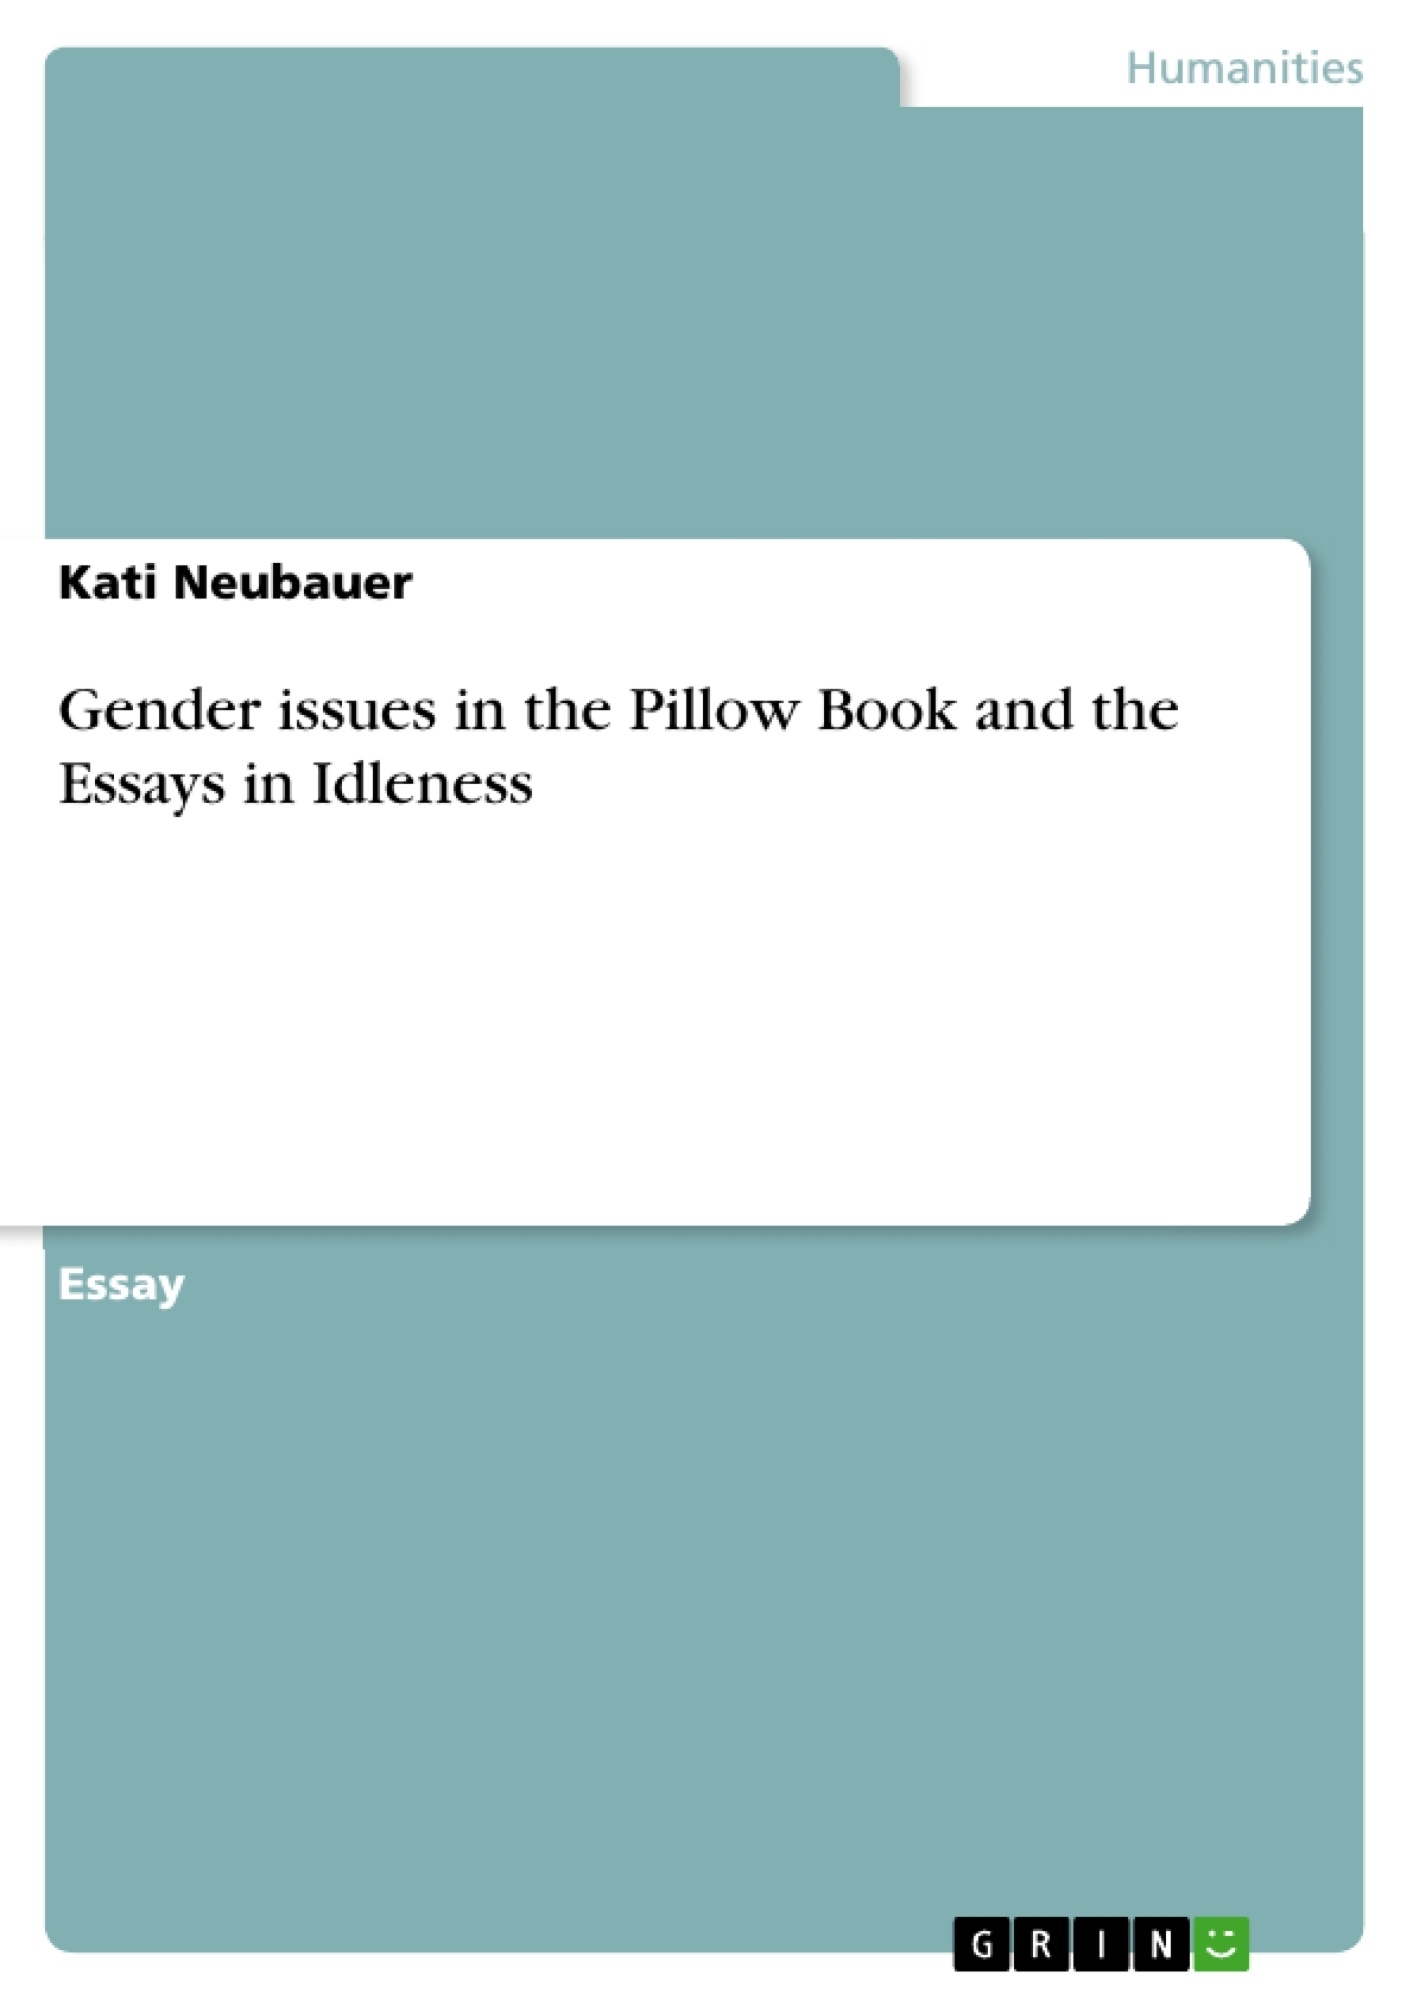 Title: Gender issues in the Pillow Book and the Essays in Idleness